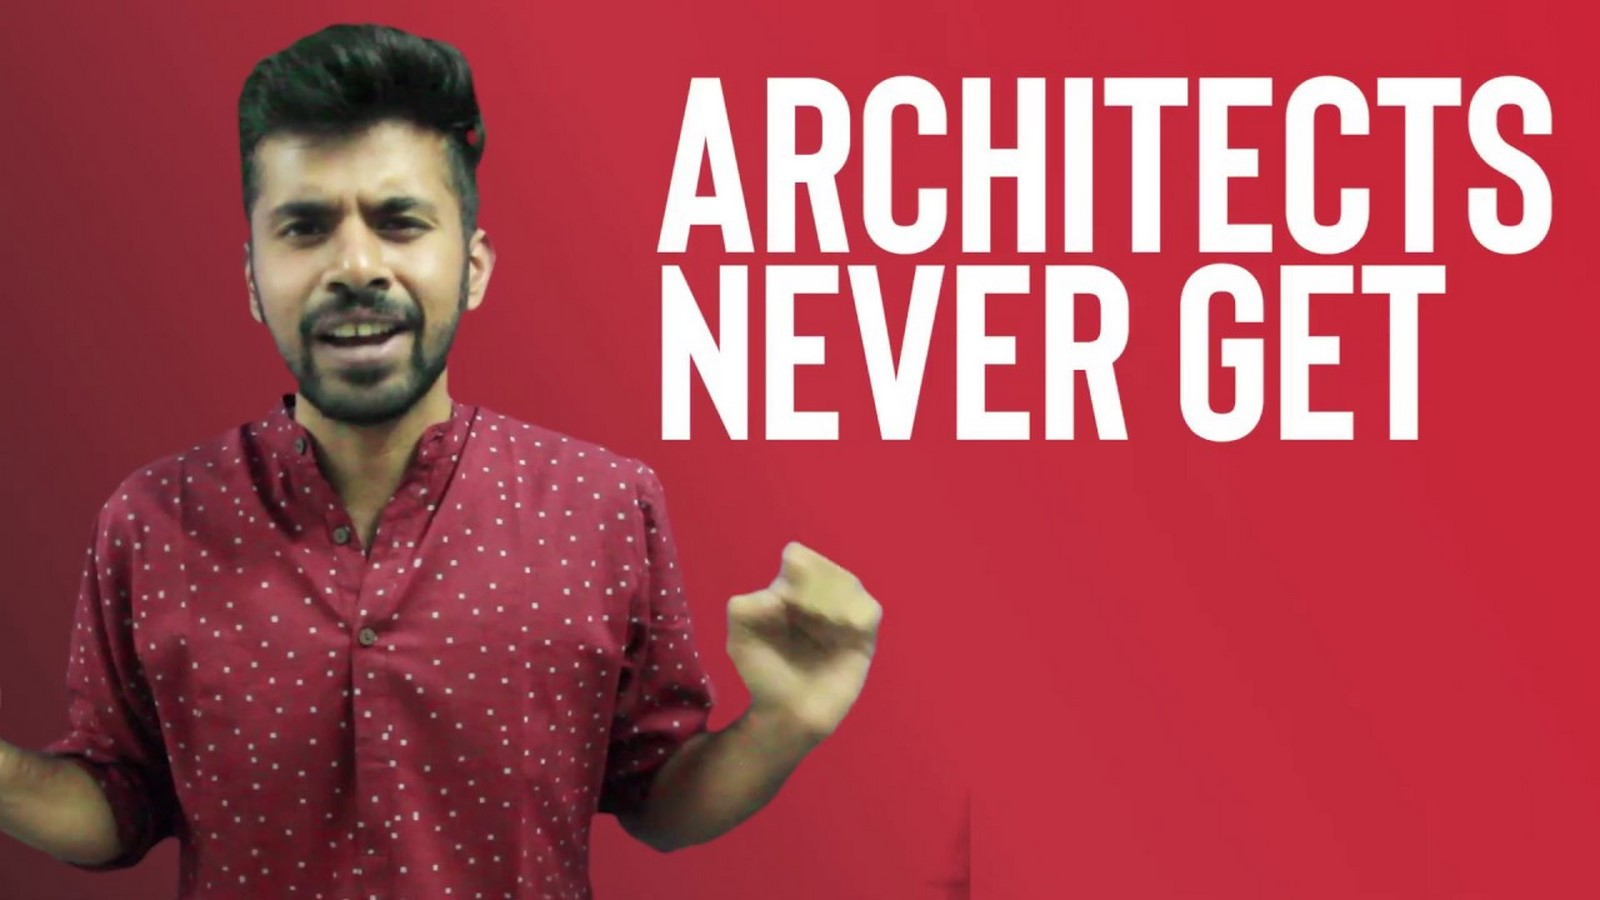 Youtube for Architects: BlessedArch- The Indian Architecture Youtube Content creator - Sheet3